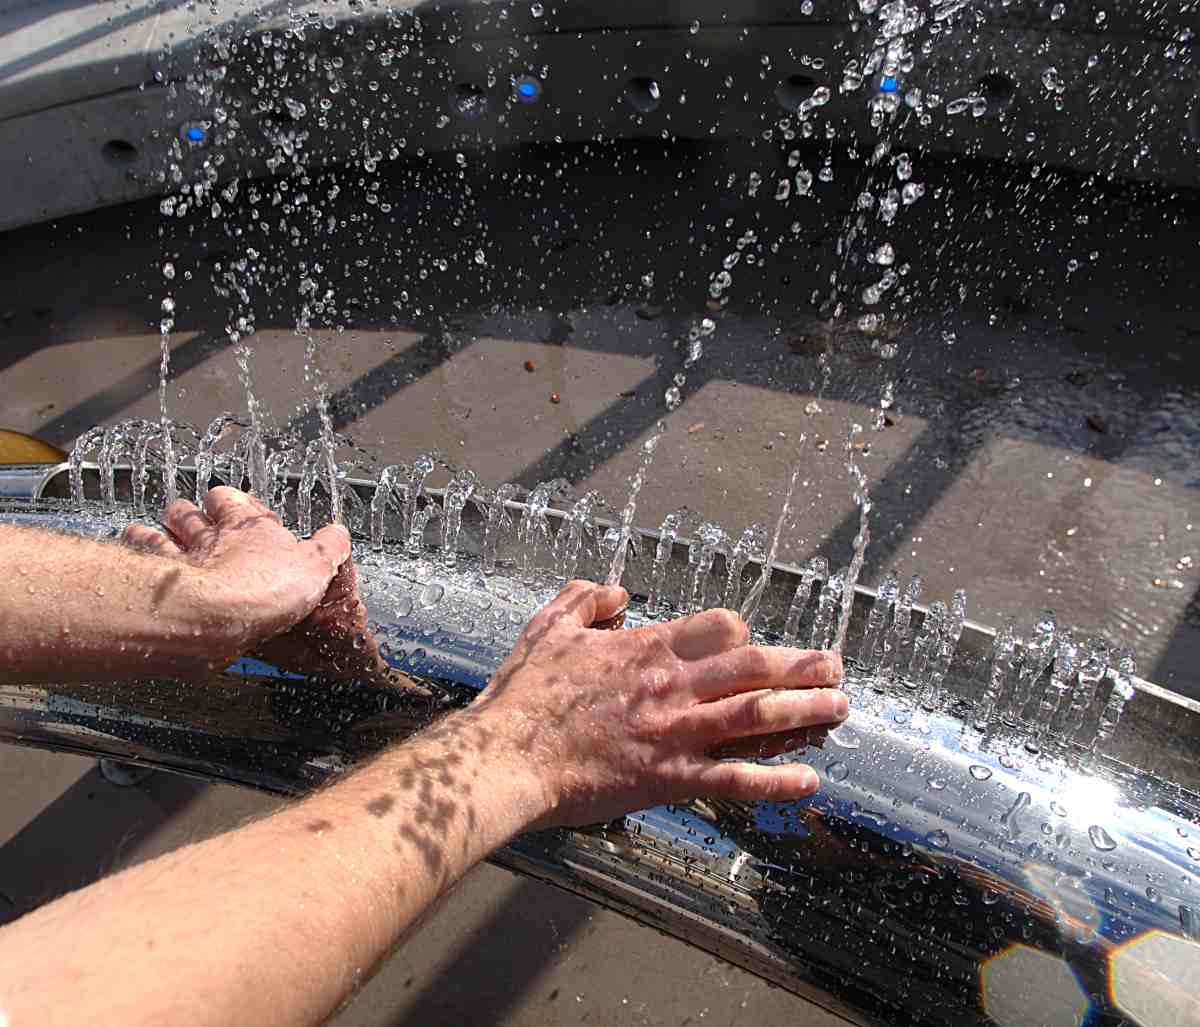 FileHydraulophone45hole-fluteOSC South Division of Pipe Organ.jpg & File:Hydraulophone45hole-fluteOSC South Division of Pipe Organ.jpg ...